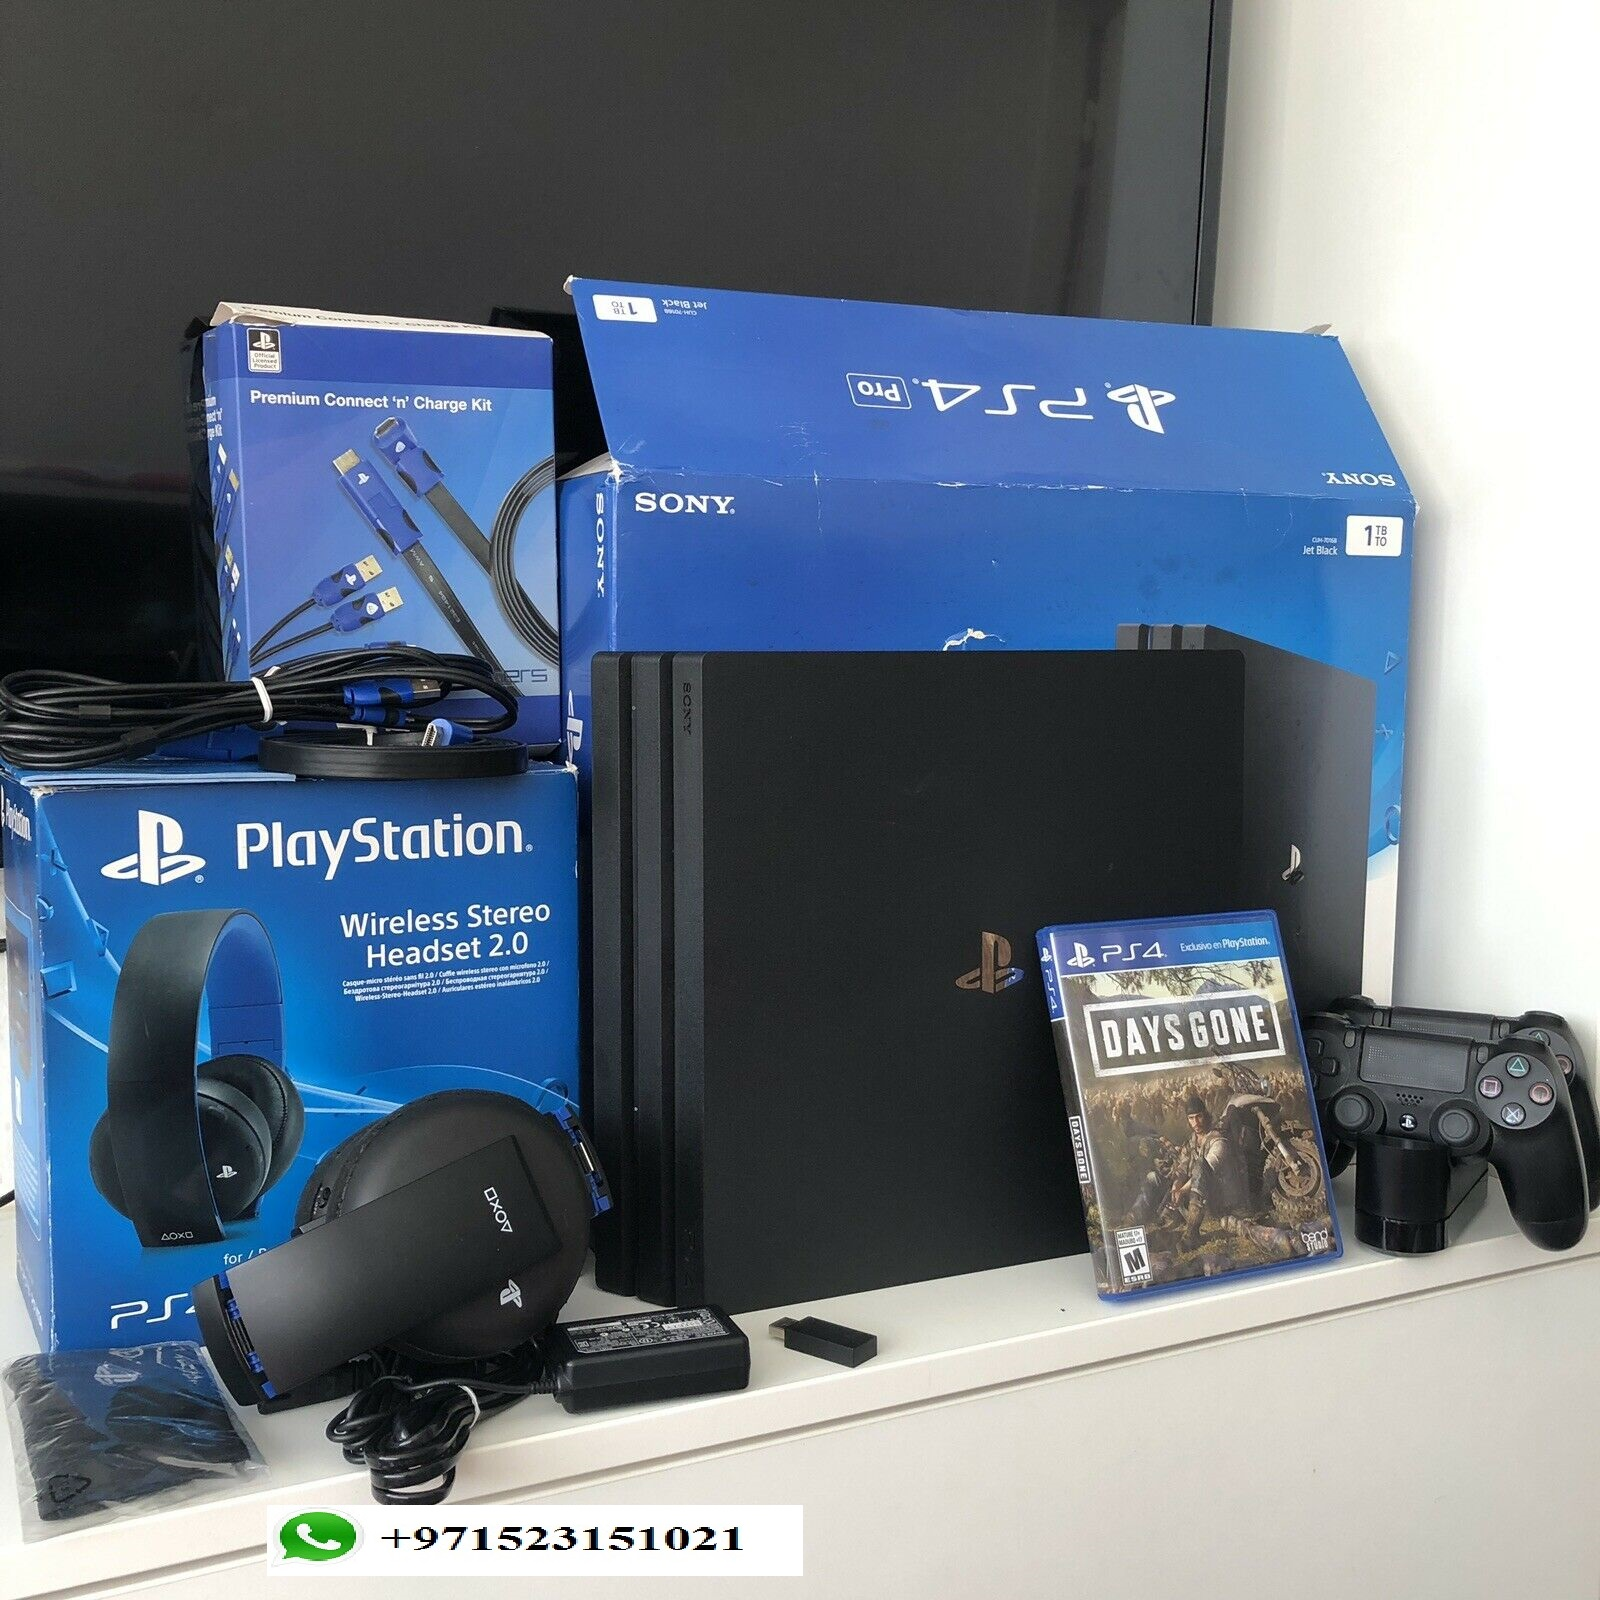 XE Hot Best Buy 5 Get 2 Free PS4 PRO 1TB,2TB Video Game ConSoLES+